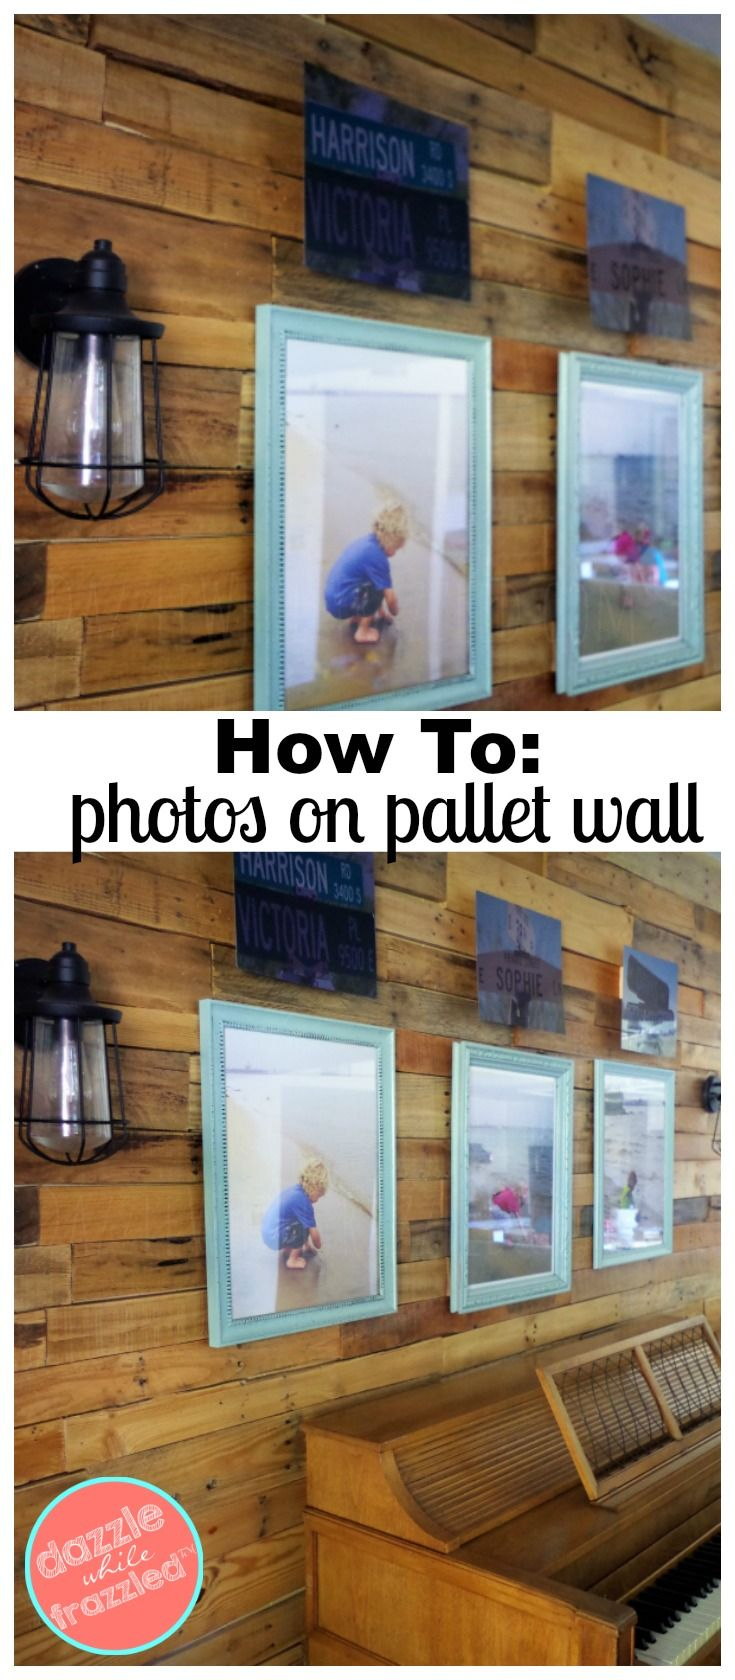 Learn how to decorate a wood pallet wall with simple photo frames and metal sign artwork so you can fully show off the beauty of a pallet wall. via @https://www.pinterest.com/dazzlefrazzled/ #palletwall #gallerywall#homedecorideas